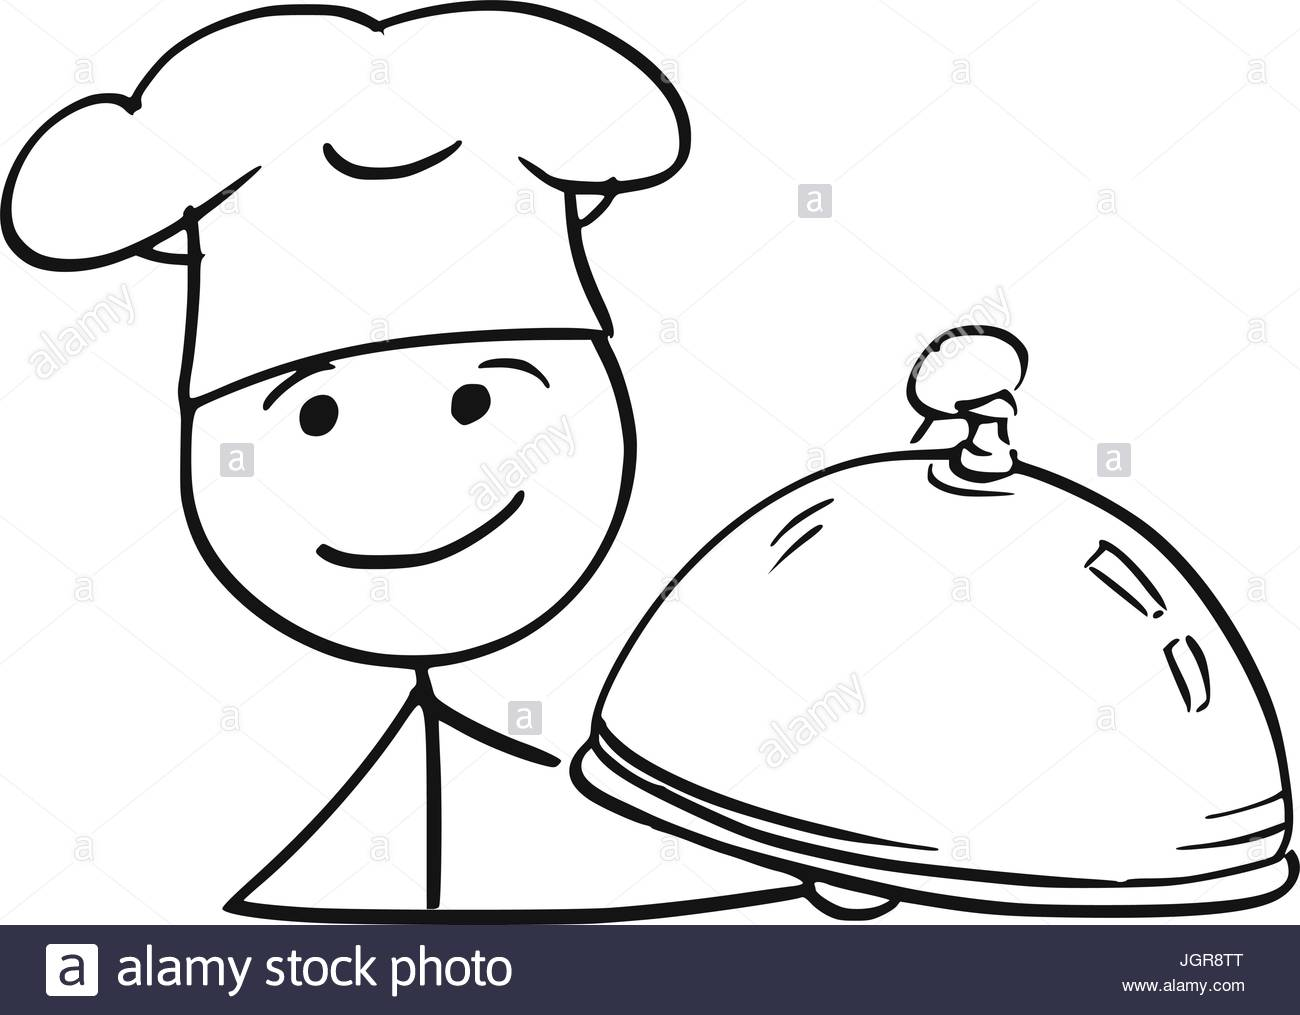 1300x1015 Cartoon Vector Stick Man Stickman Drawing Of Male Cook Chef